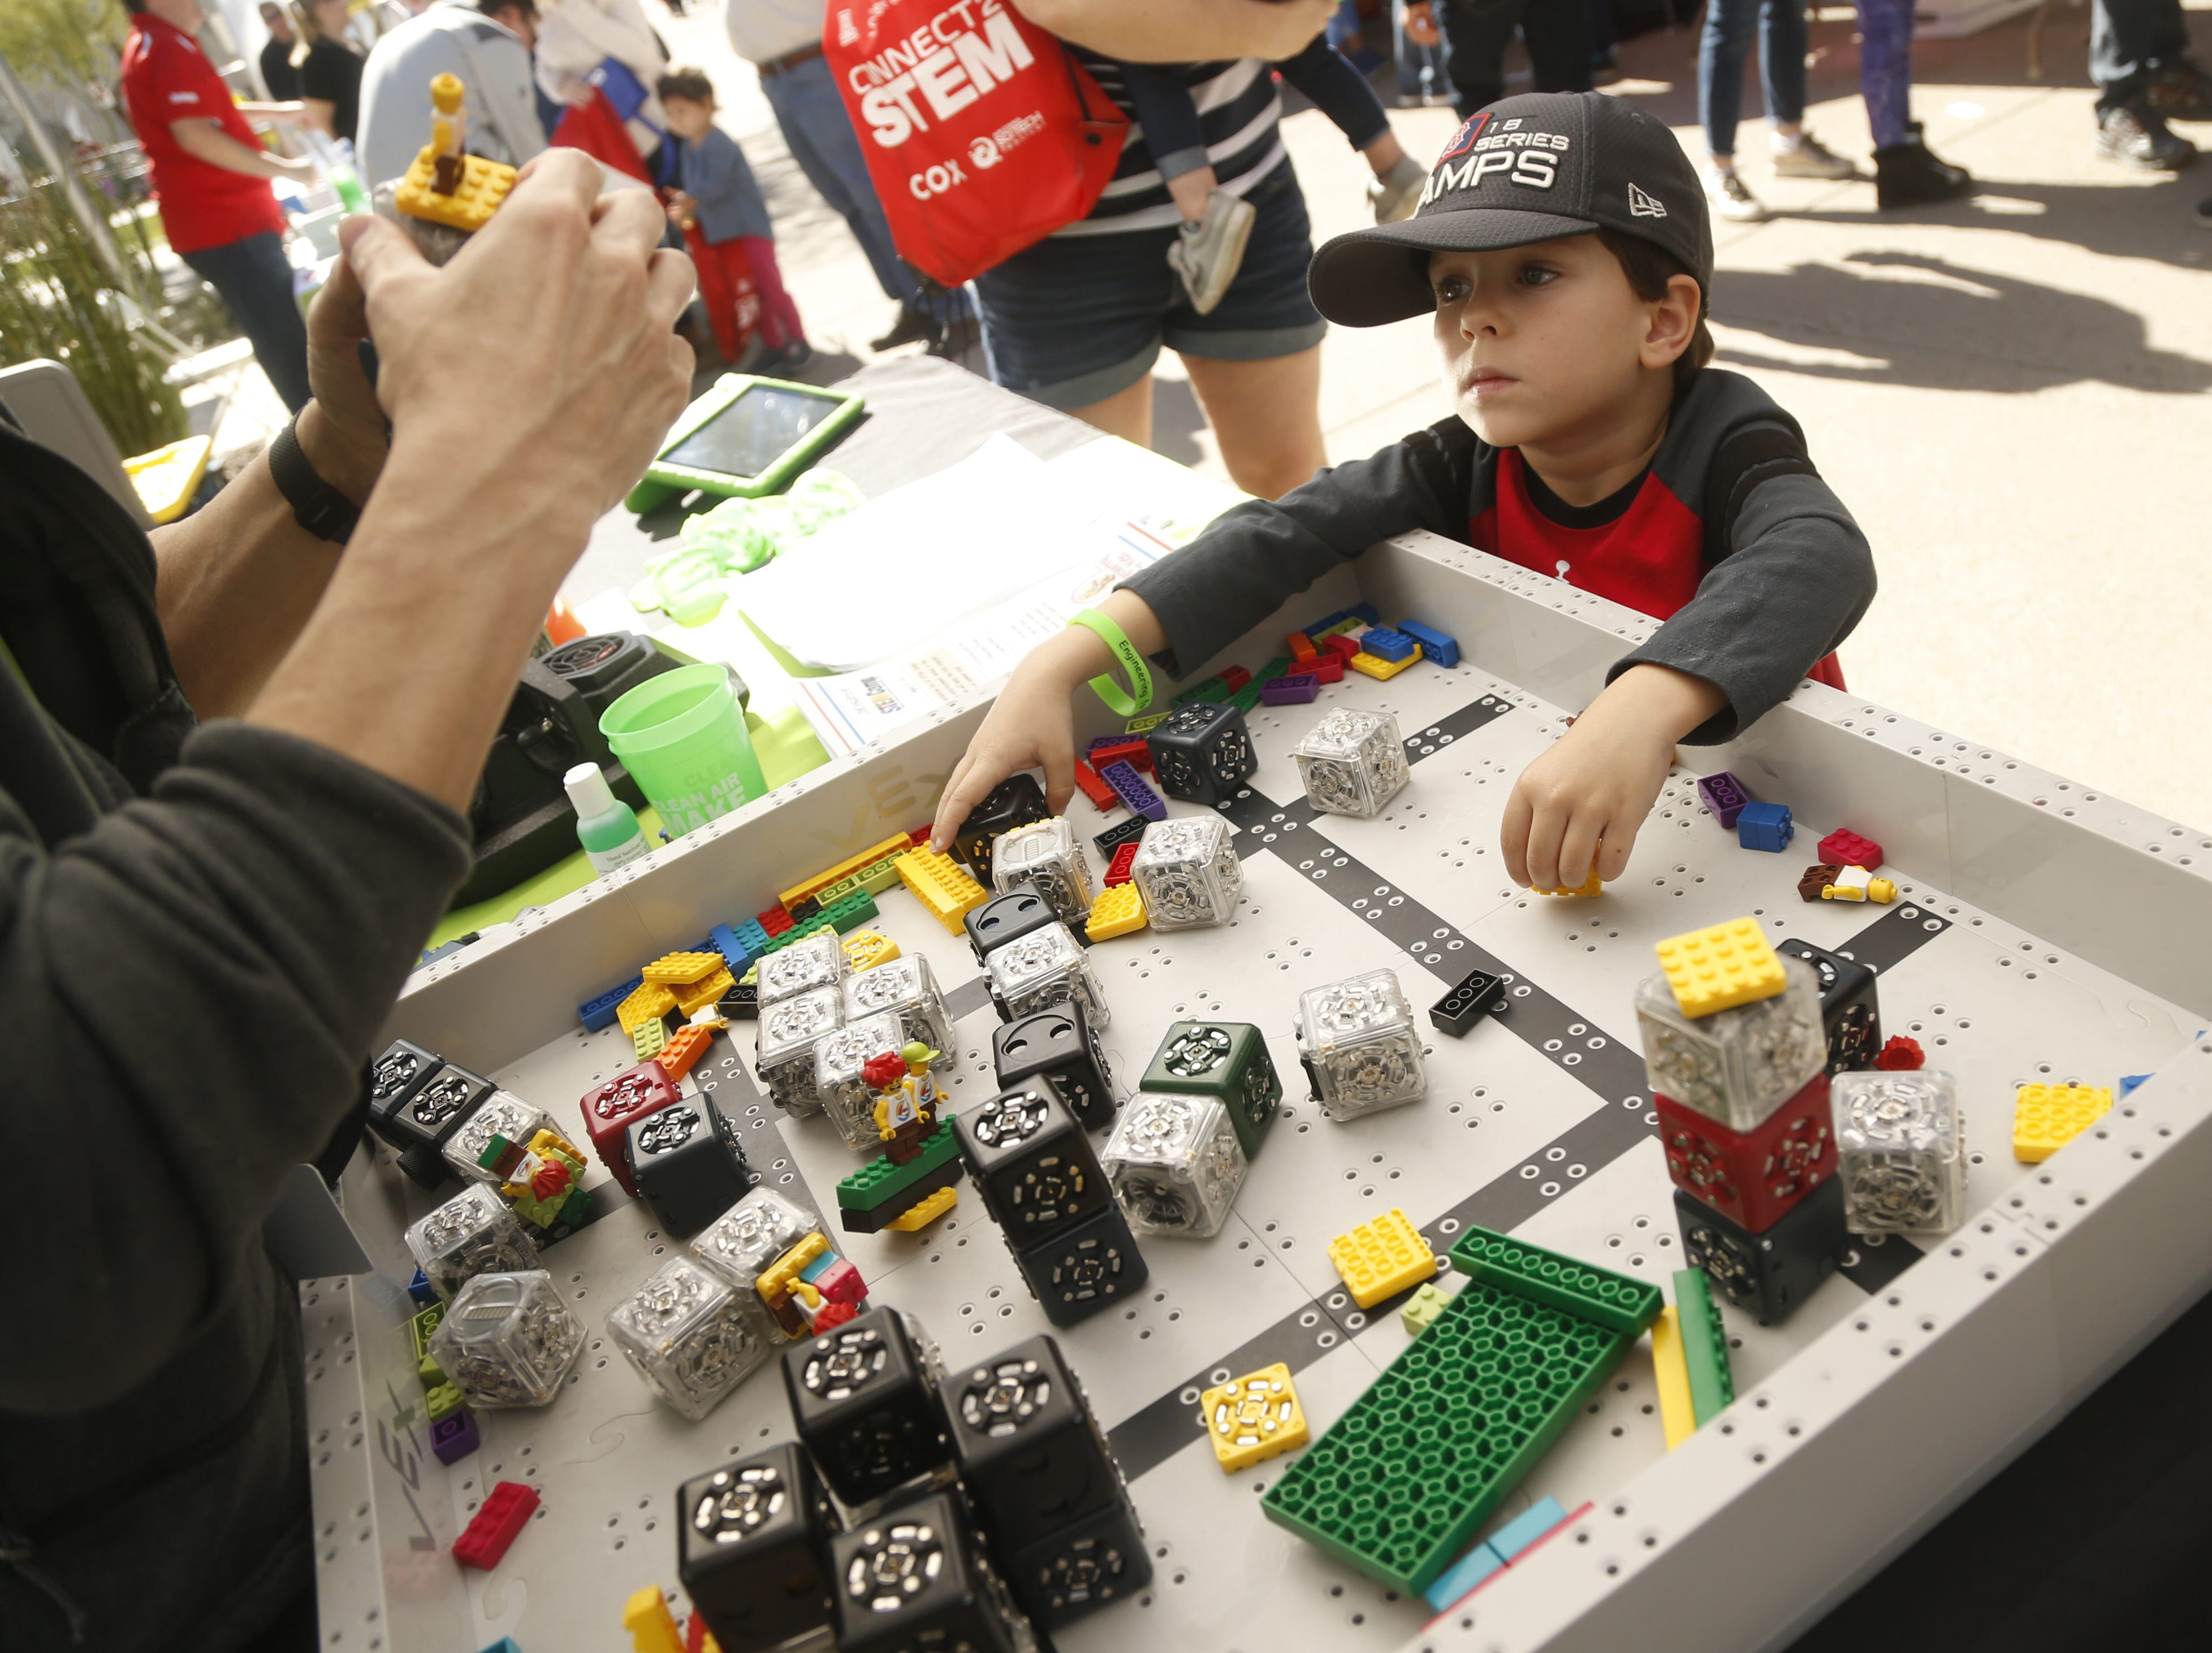 Gavin Desmarais, 4, watches as a LEGO robot is built during a STEM outreach event in downtown Phoenix, Ariz. on January 26, 2019.